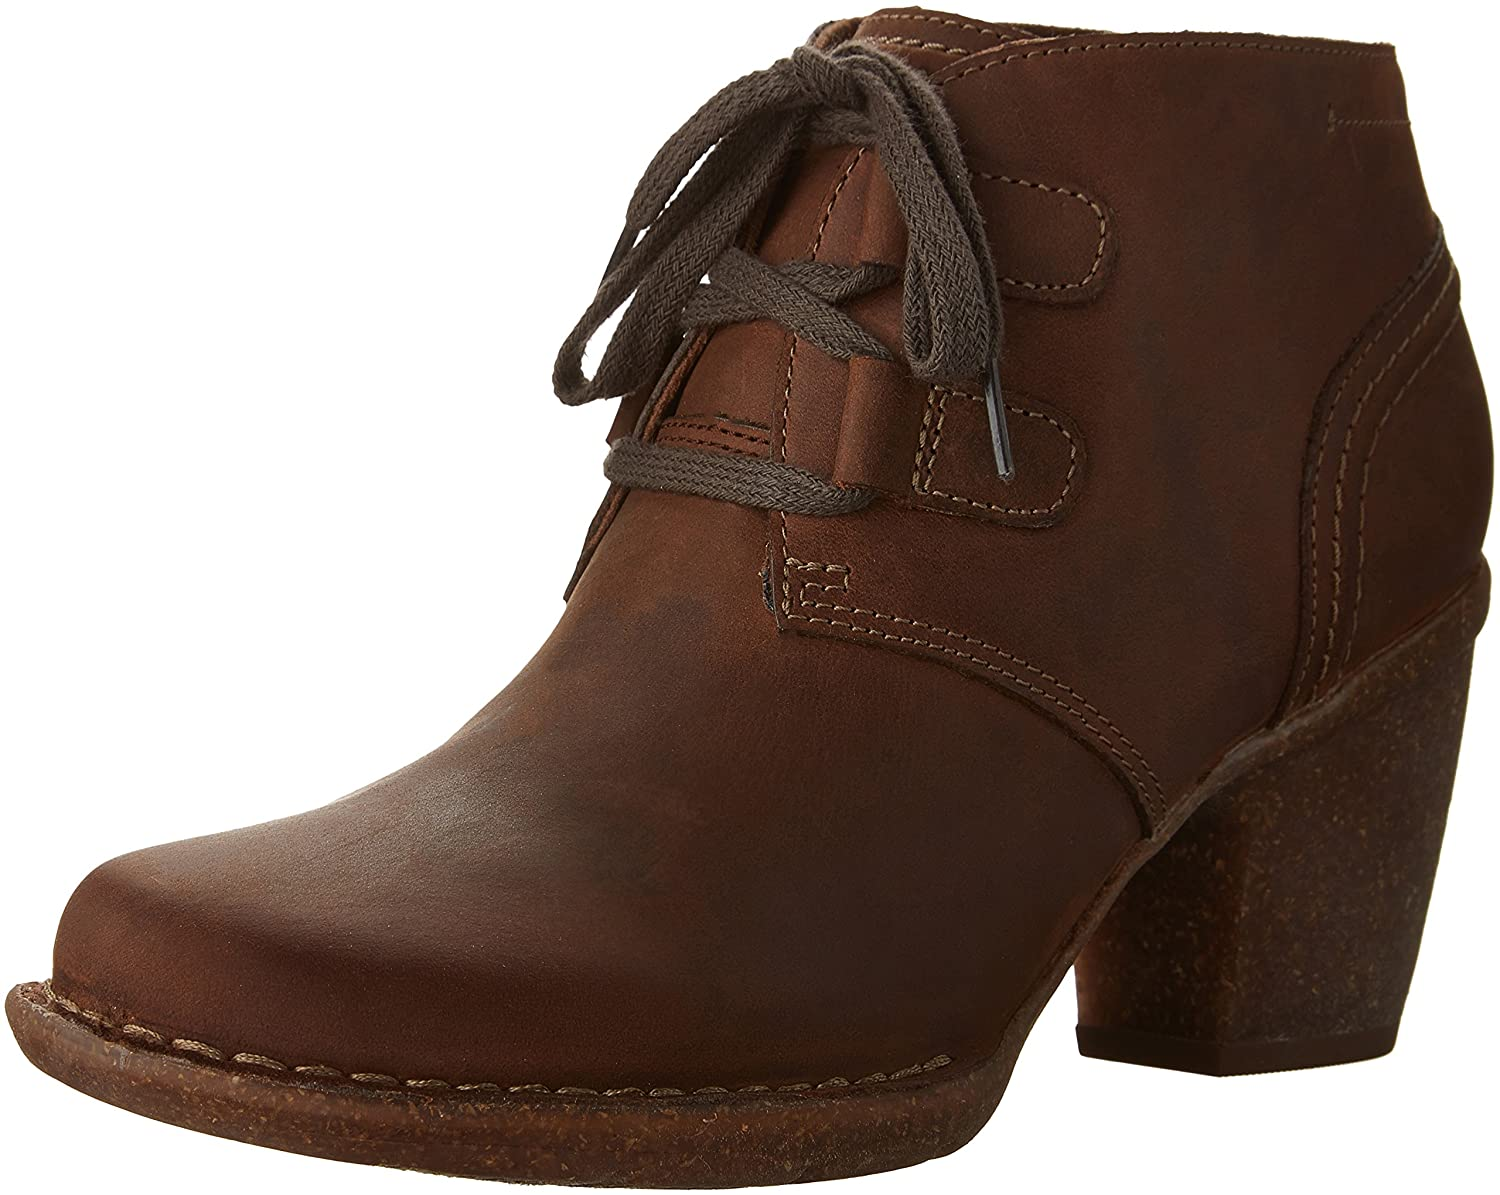 CLARKS Women's Carleta Lyon Boot B0195SOLAW 11 B(M) US|Brown Oiled Nubuck